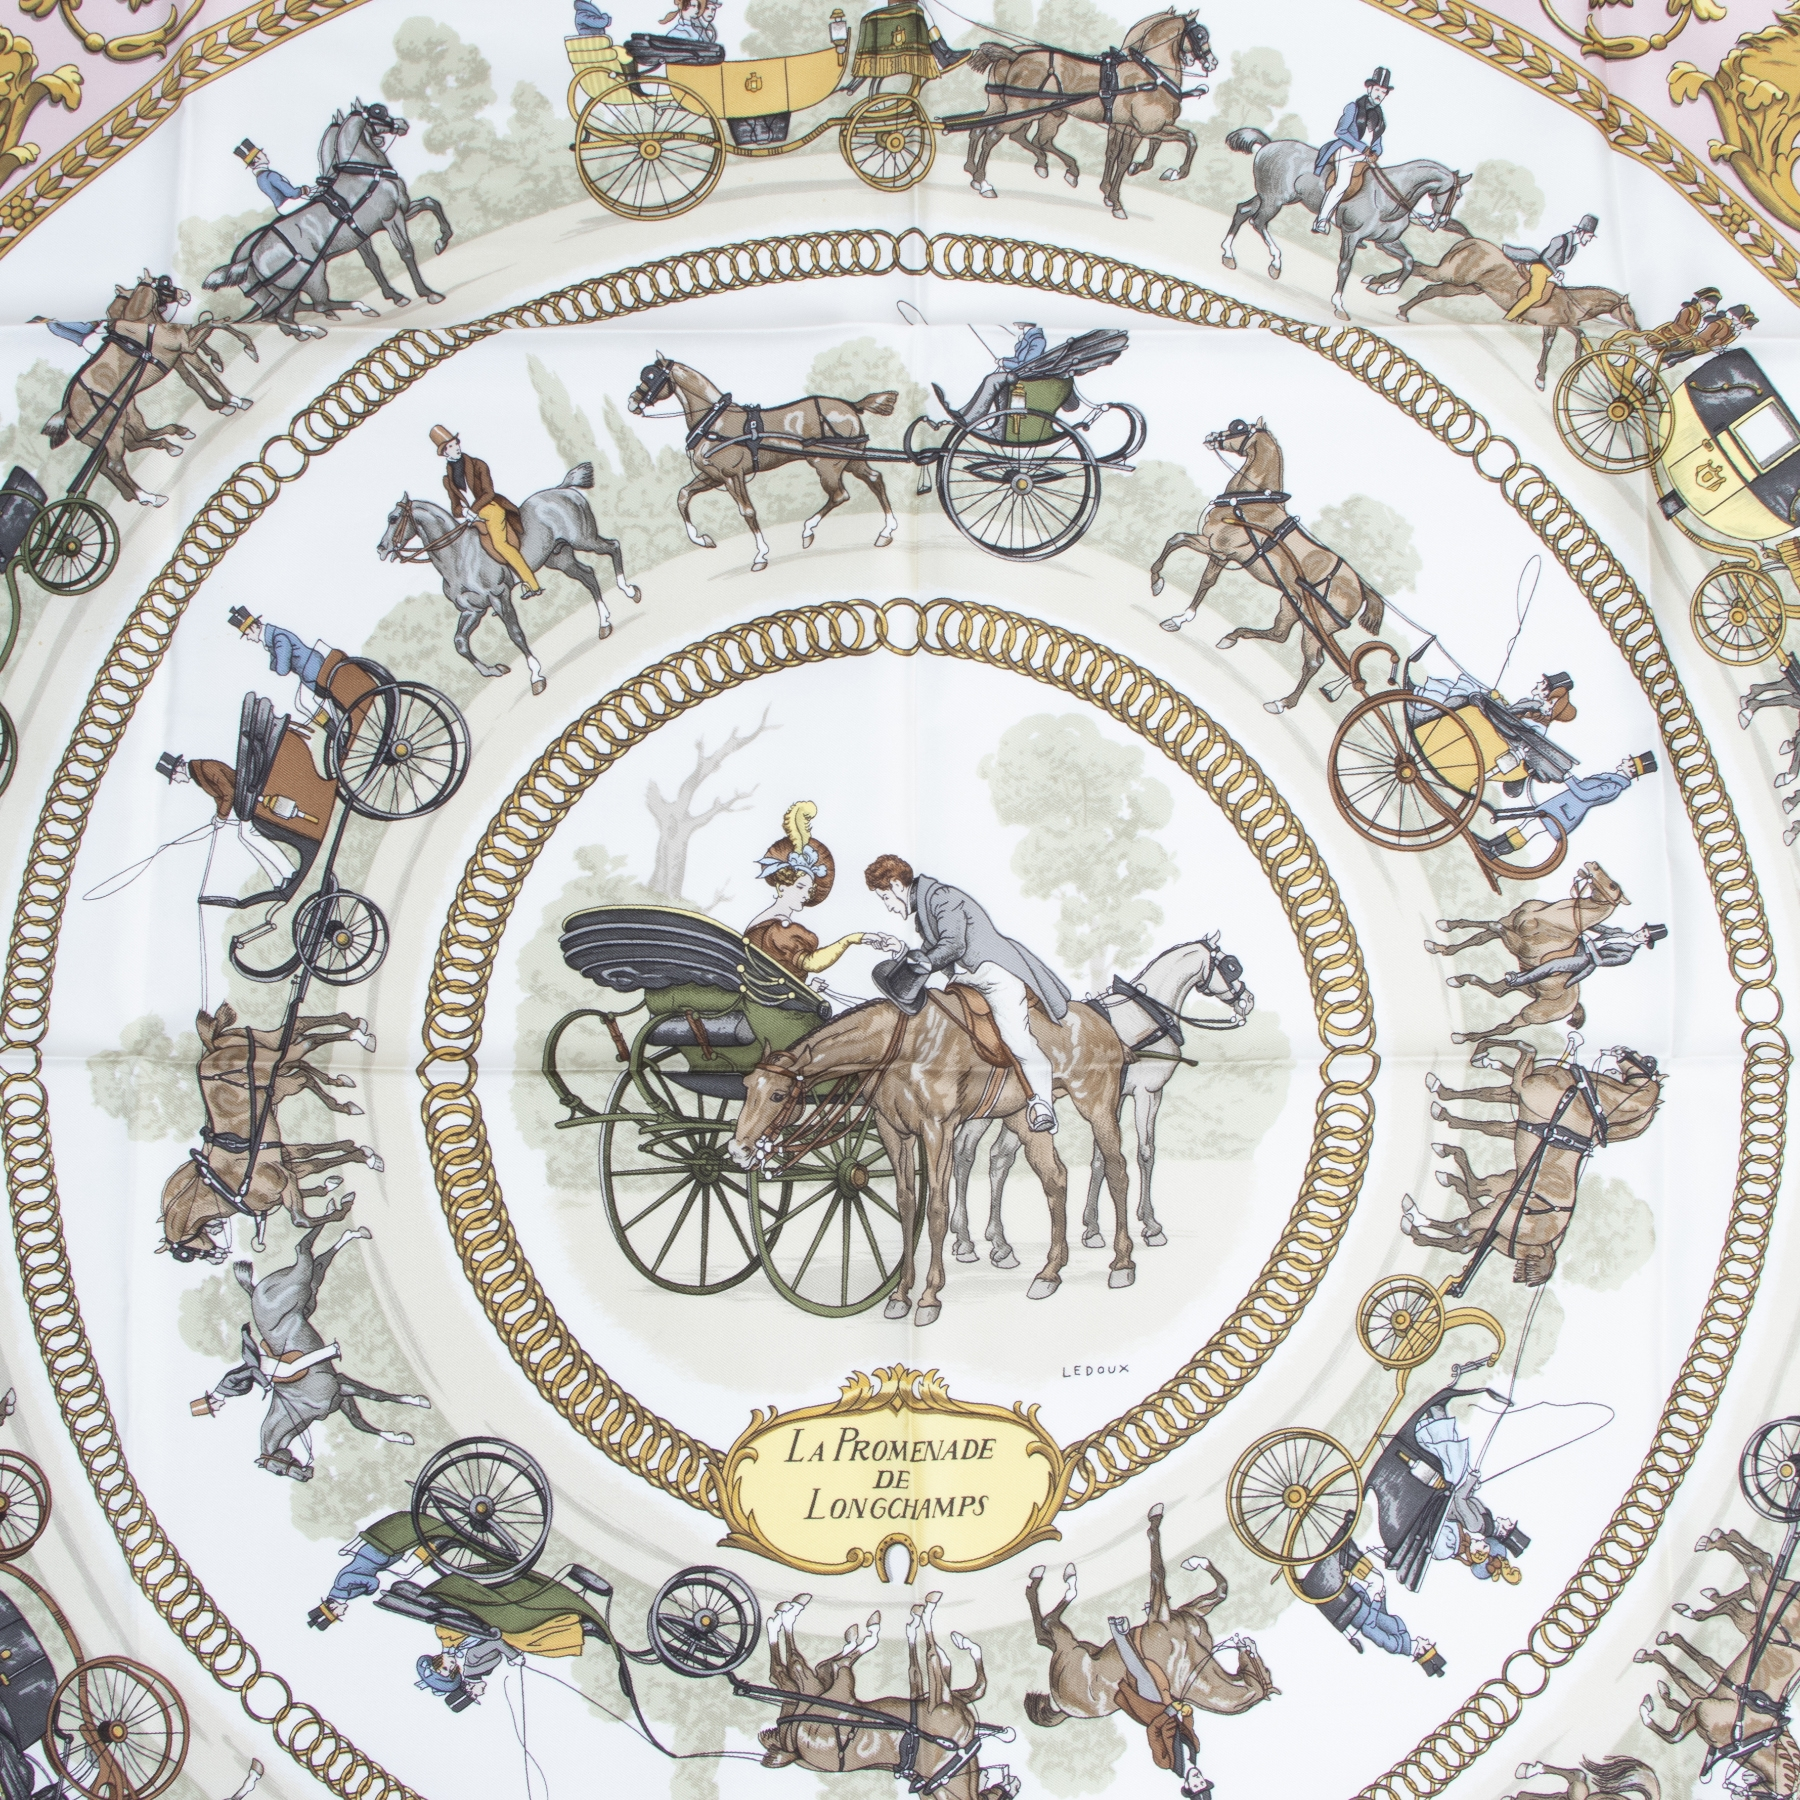 Hermès Carré La Promenade De Longchamps buy and sell your authentic handbags